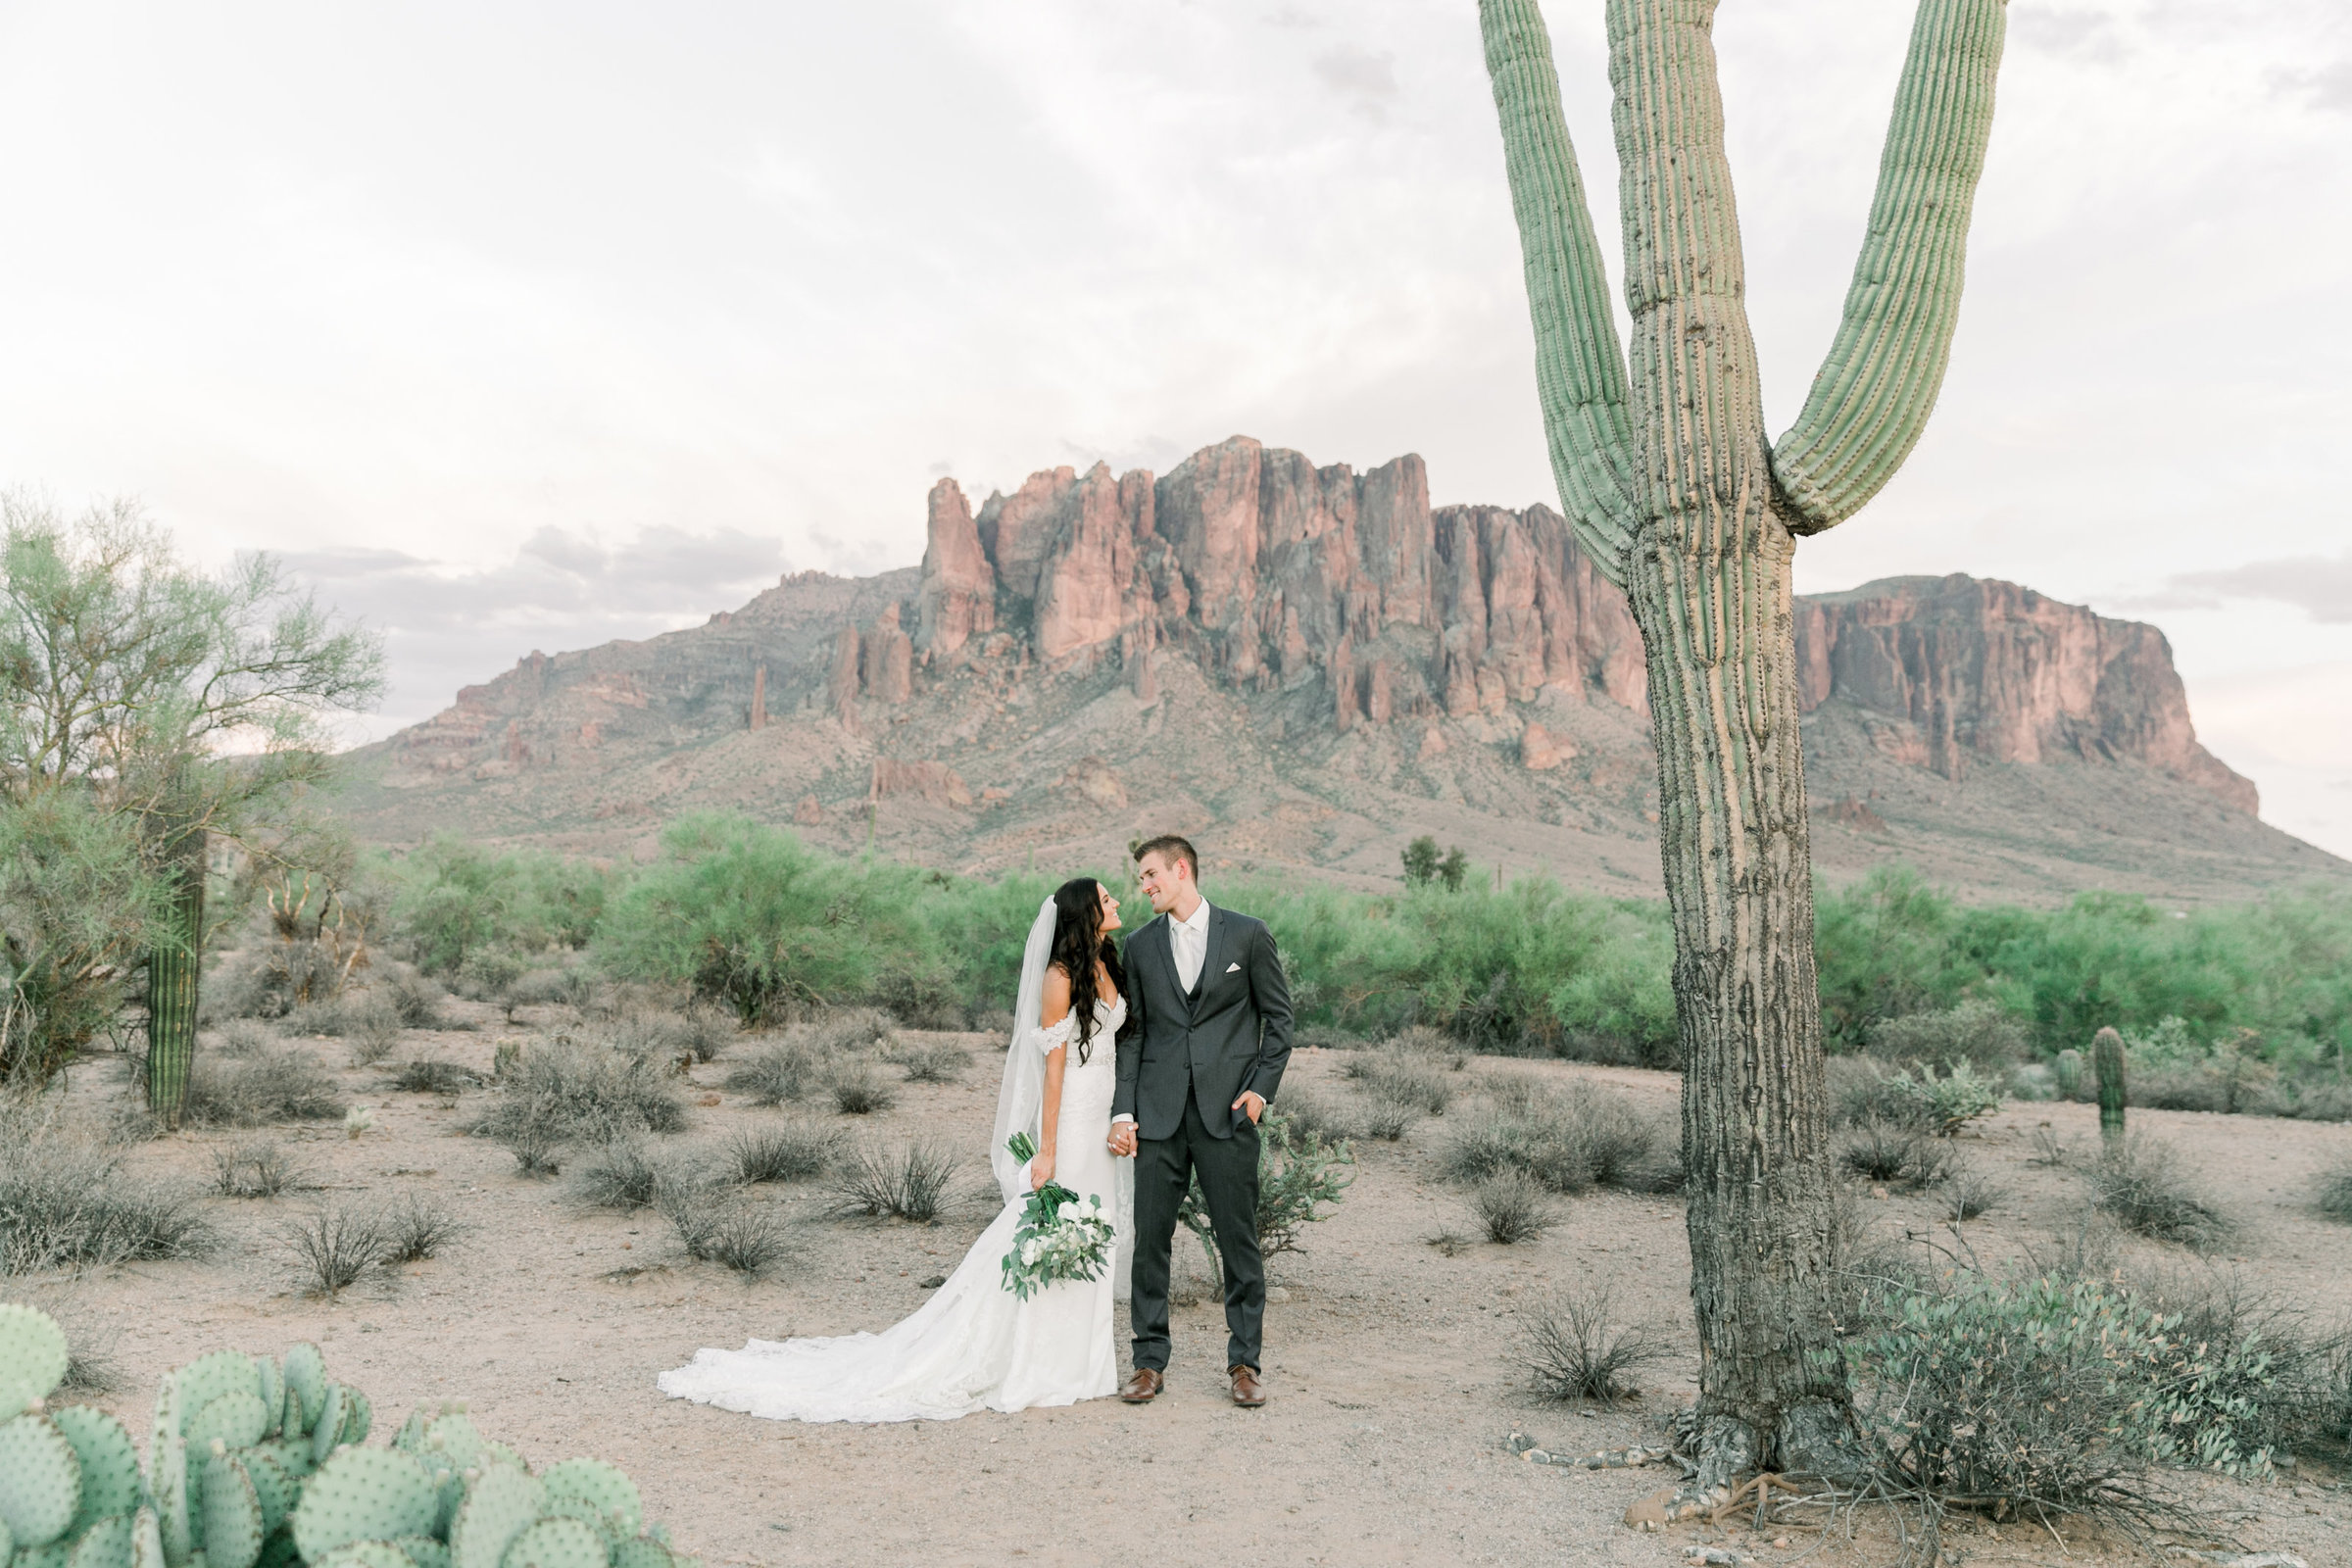 Karlie Colleen Photography - Arizona Wedding - The Paseo Venue - Jackie & Ryan -693